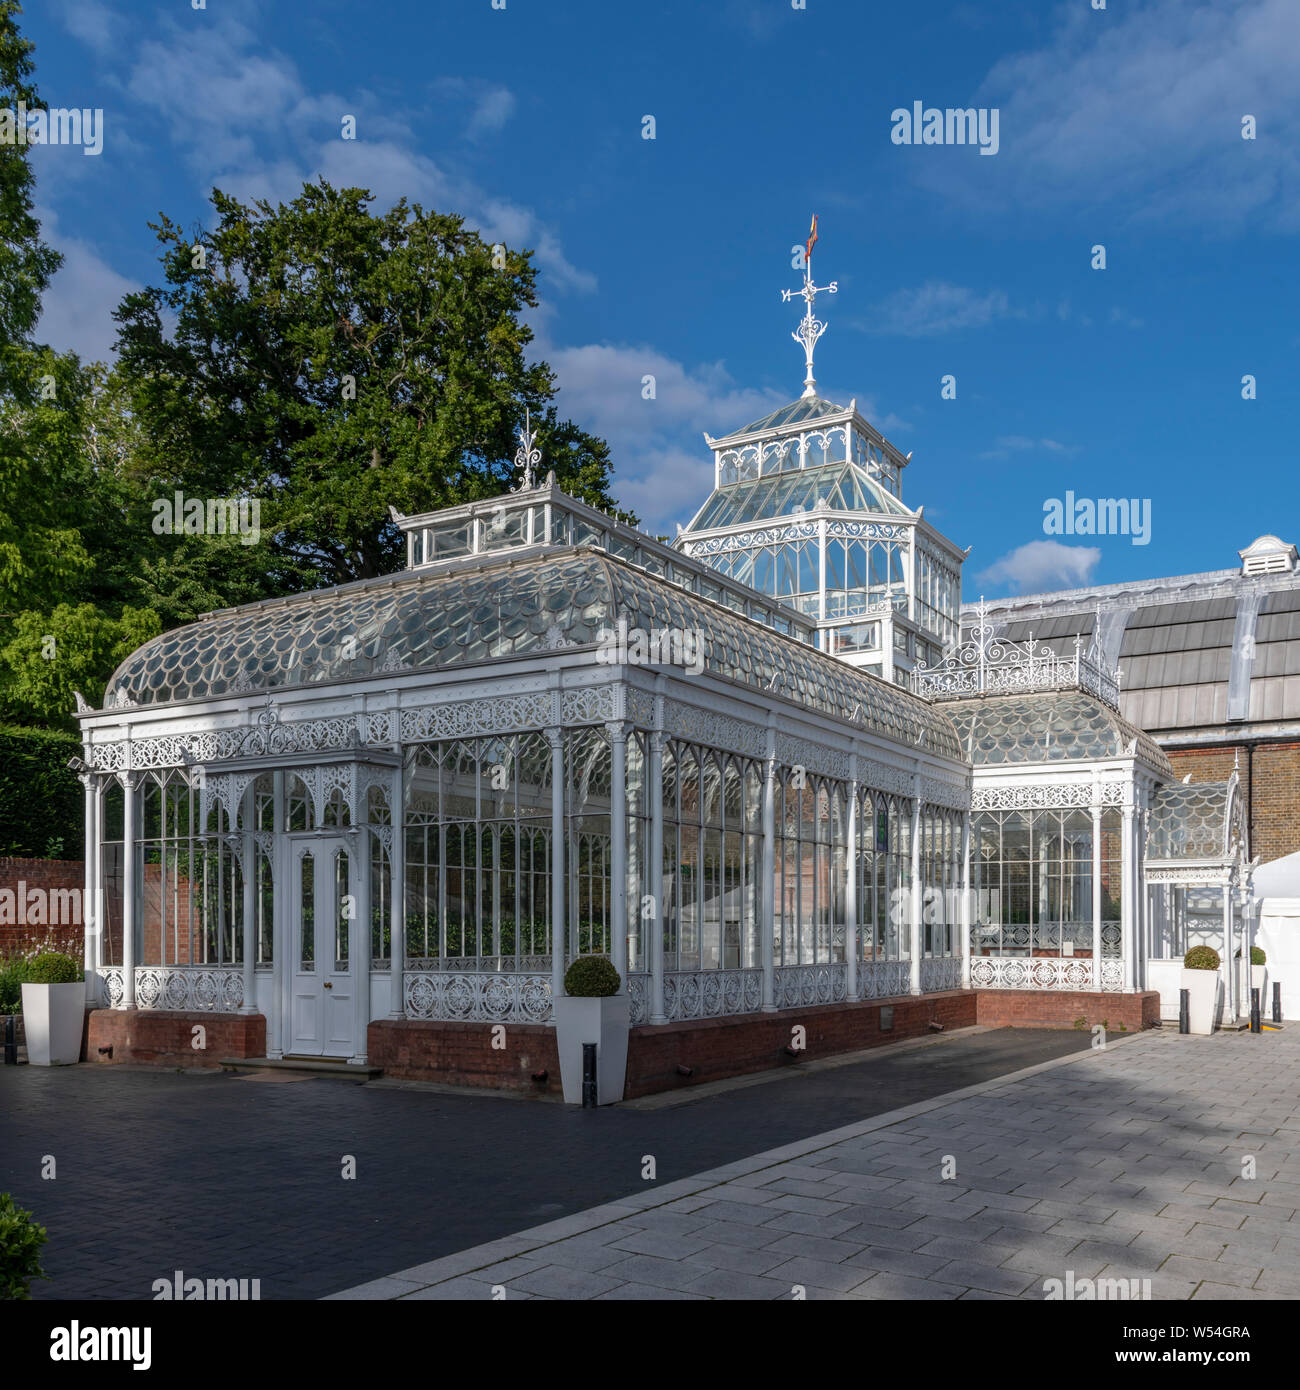 Horniman Museum near Forest Hill, was designed by architect Charles Harrison Townsend, opened in 1901. Horniman insisted the museum was freely open. Stock Photo